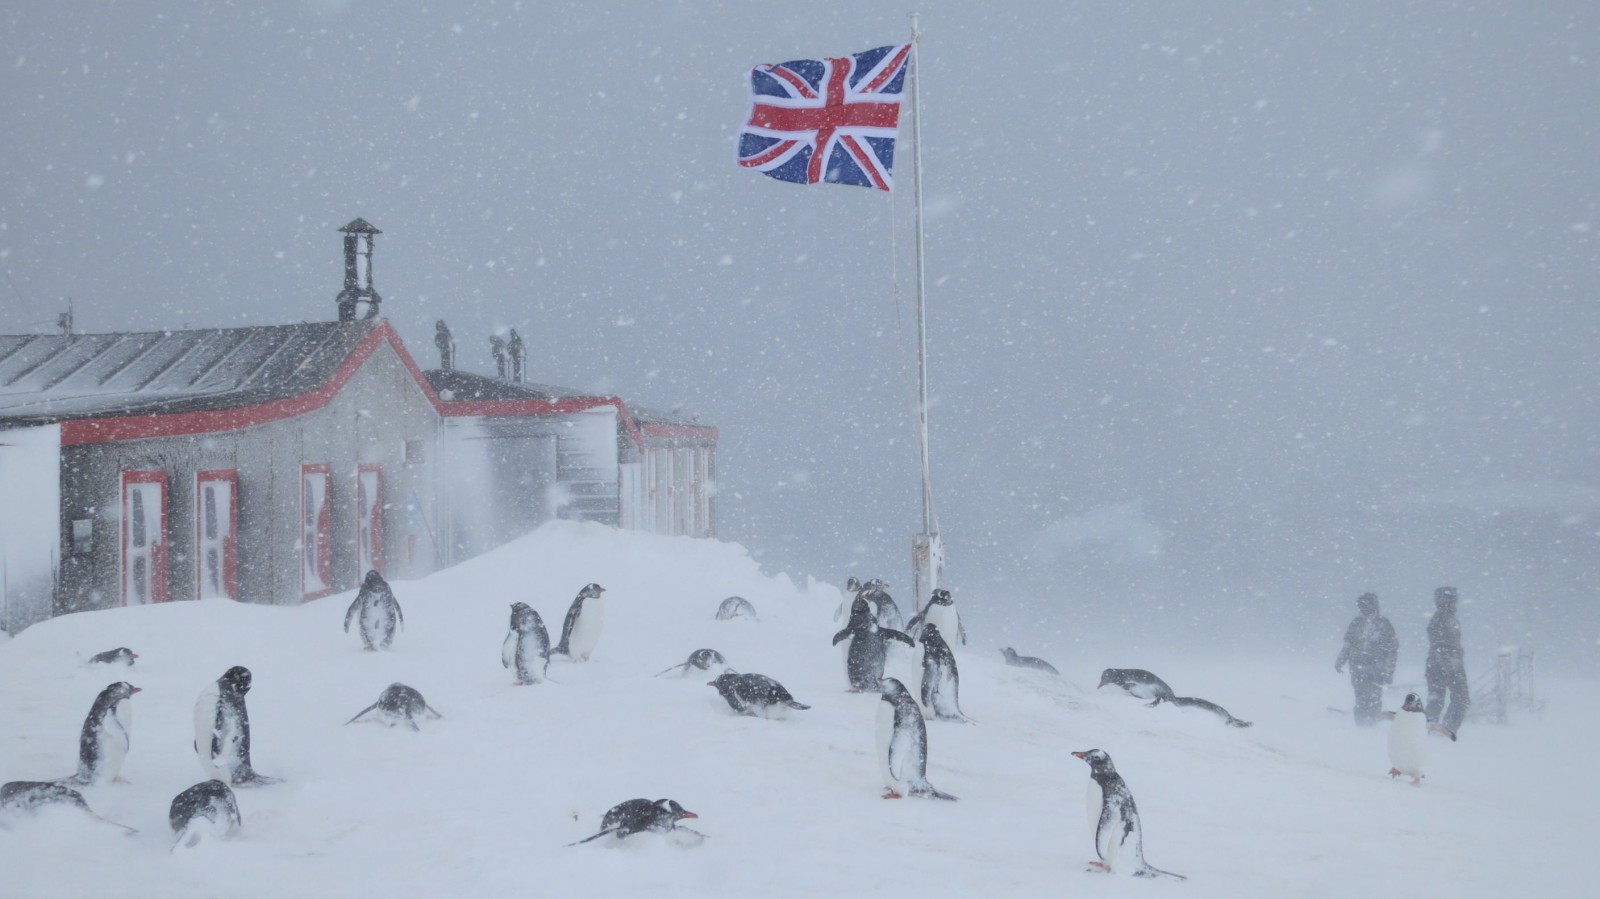 Bransfield House on a snowy cold day, with Union flag flying, visitors and gentoo penguins.